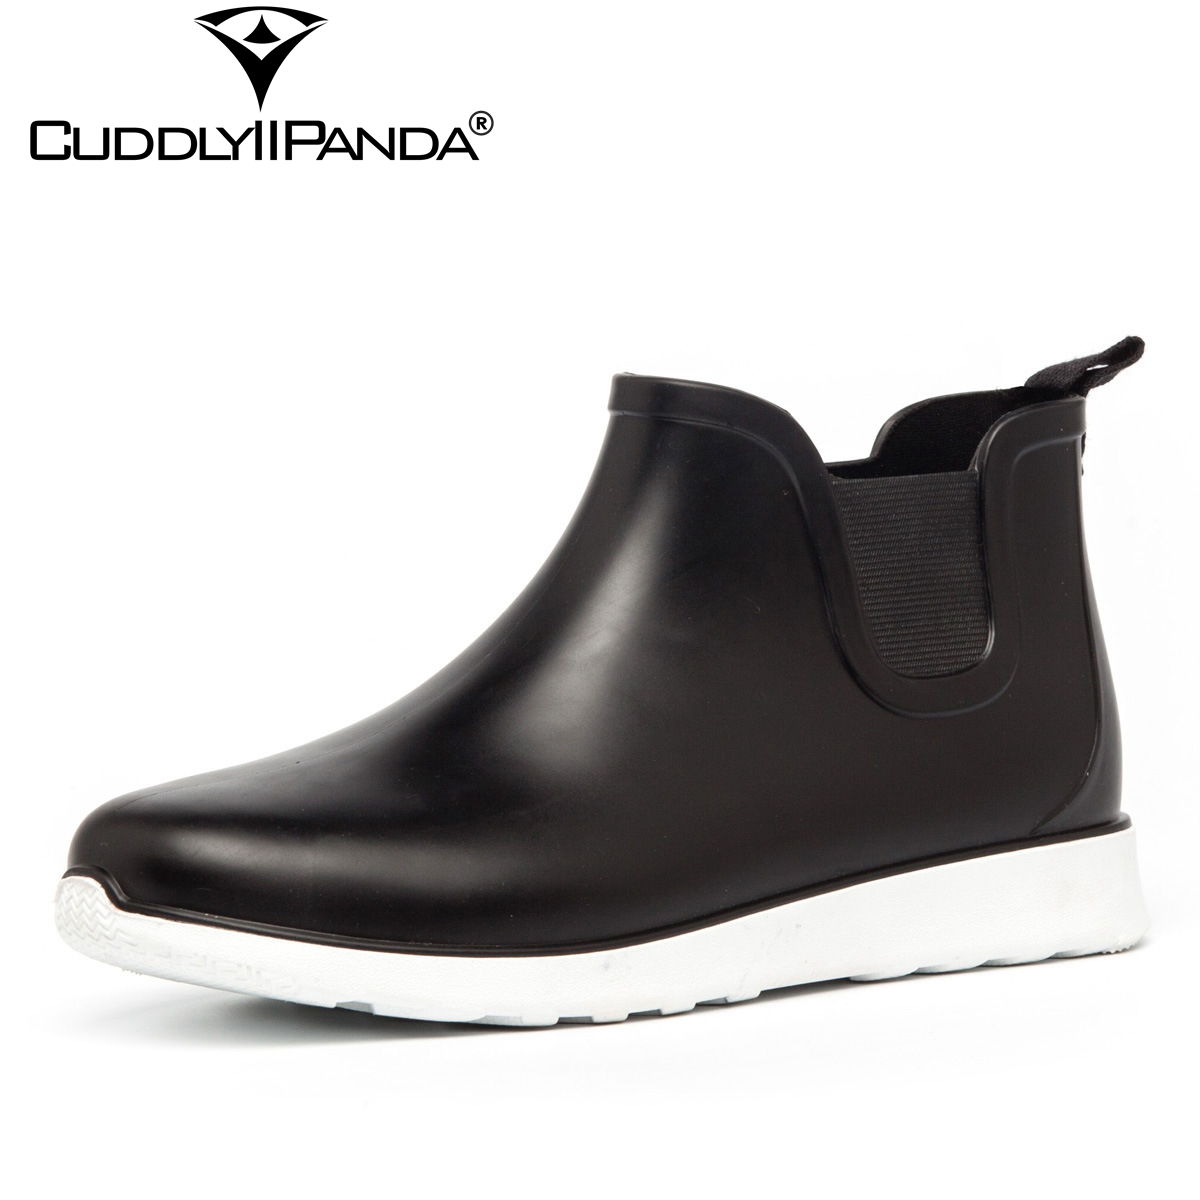 CuddlyIIPanda 2018 Summer PVC Rain Boots Non-slide Men Ankle Boots Waterproof Chelsea Boots Fashion Botas Hombre Drop Shipping